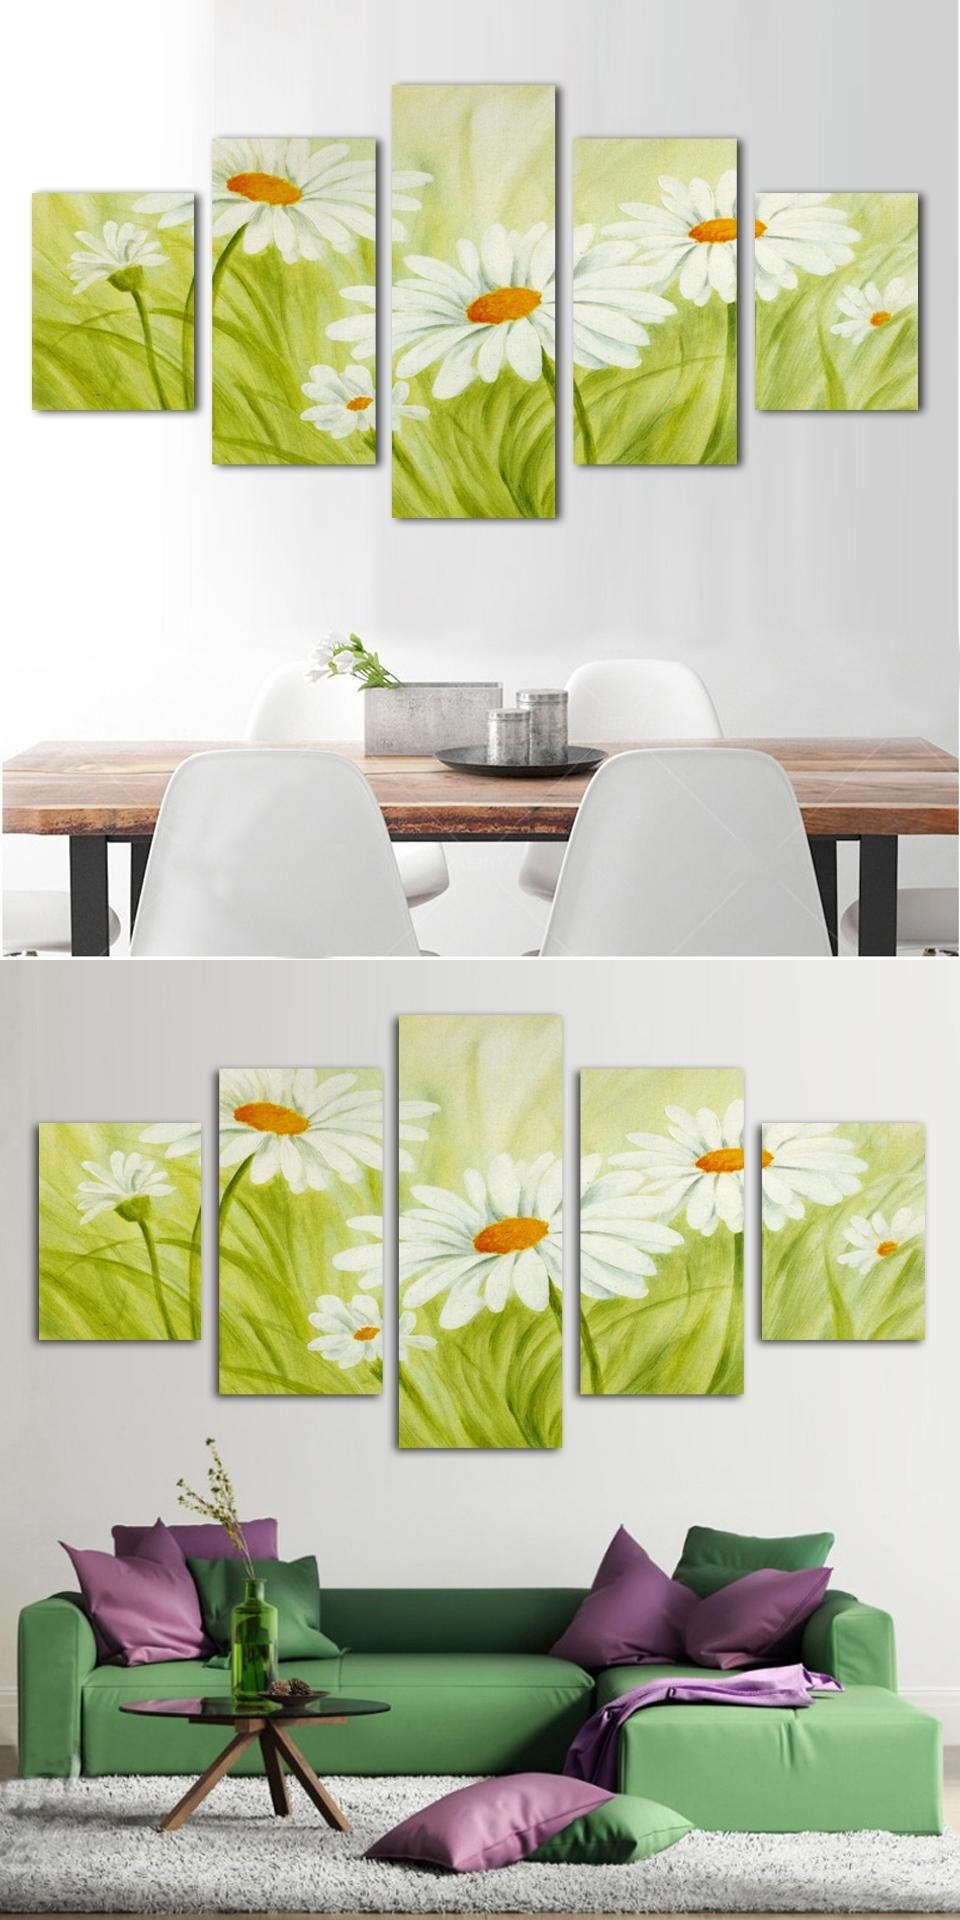 2017 No Time-limited 5 Panels Chrysanthemum Flowers Art Canvas Wall ...